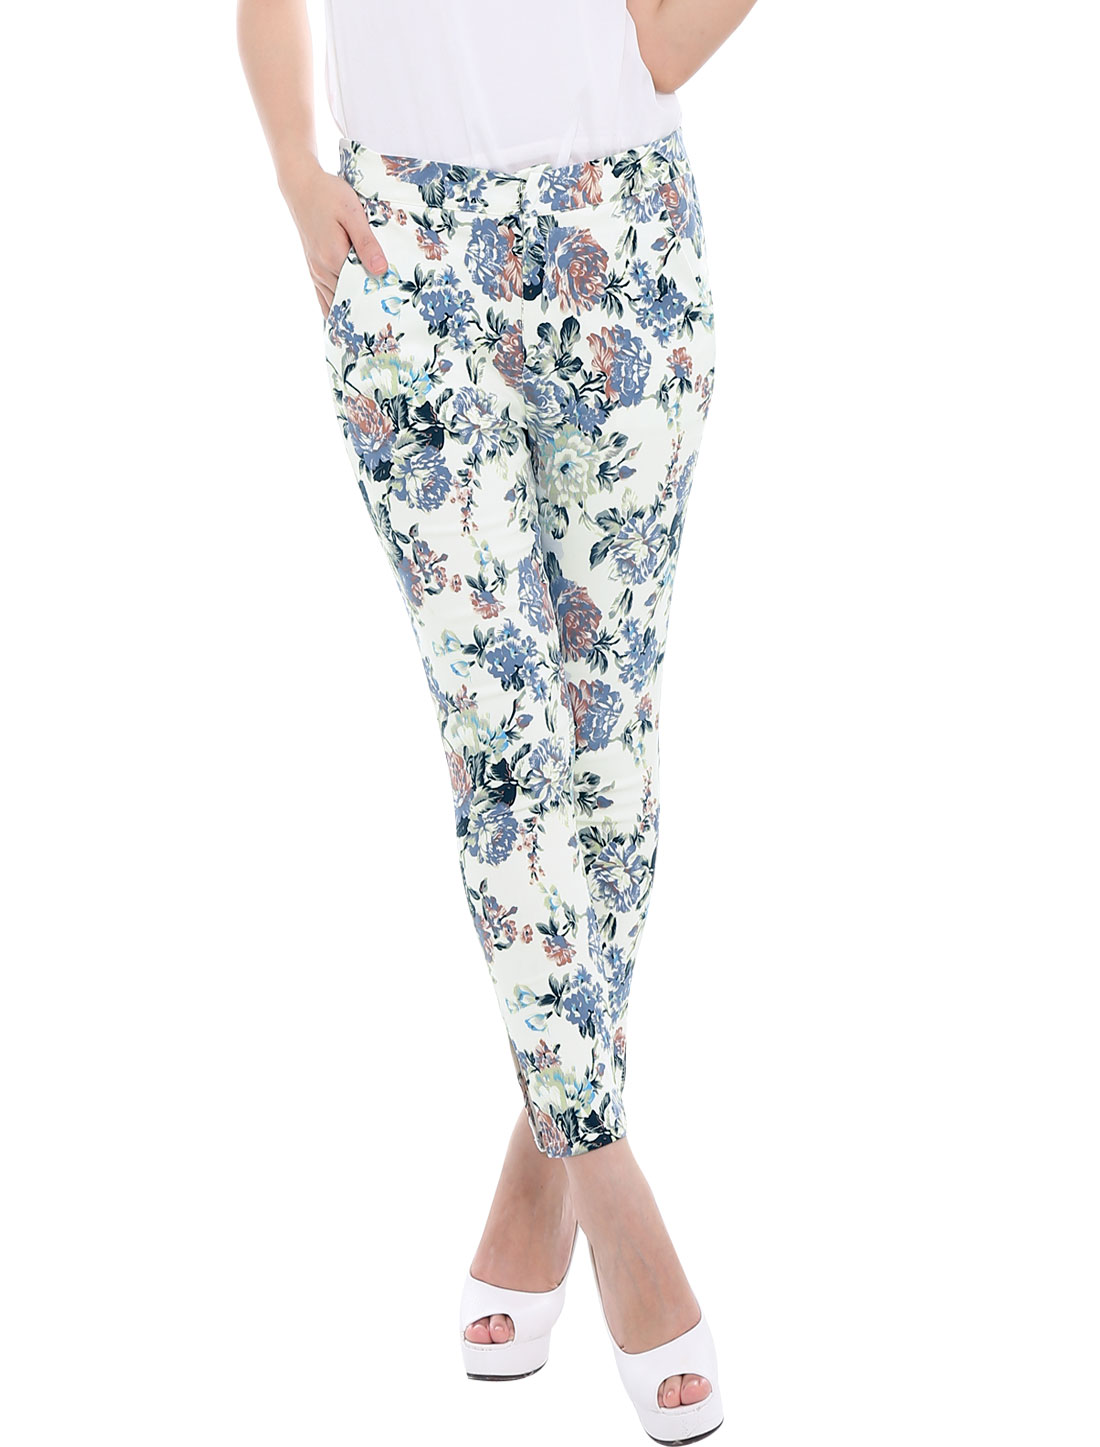 Women's Hook Eye Closure Zip Fly Floral-Printed Stretchy Cropped Pants White XS